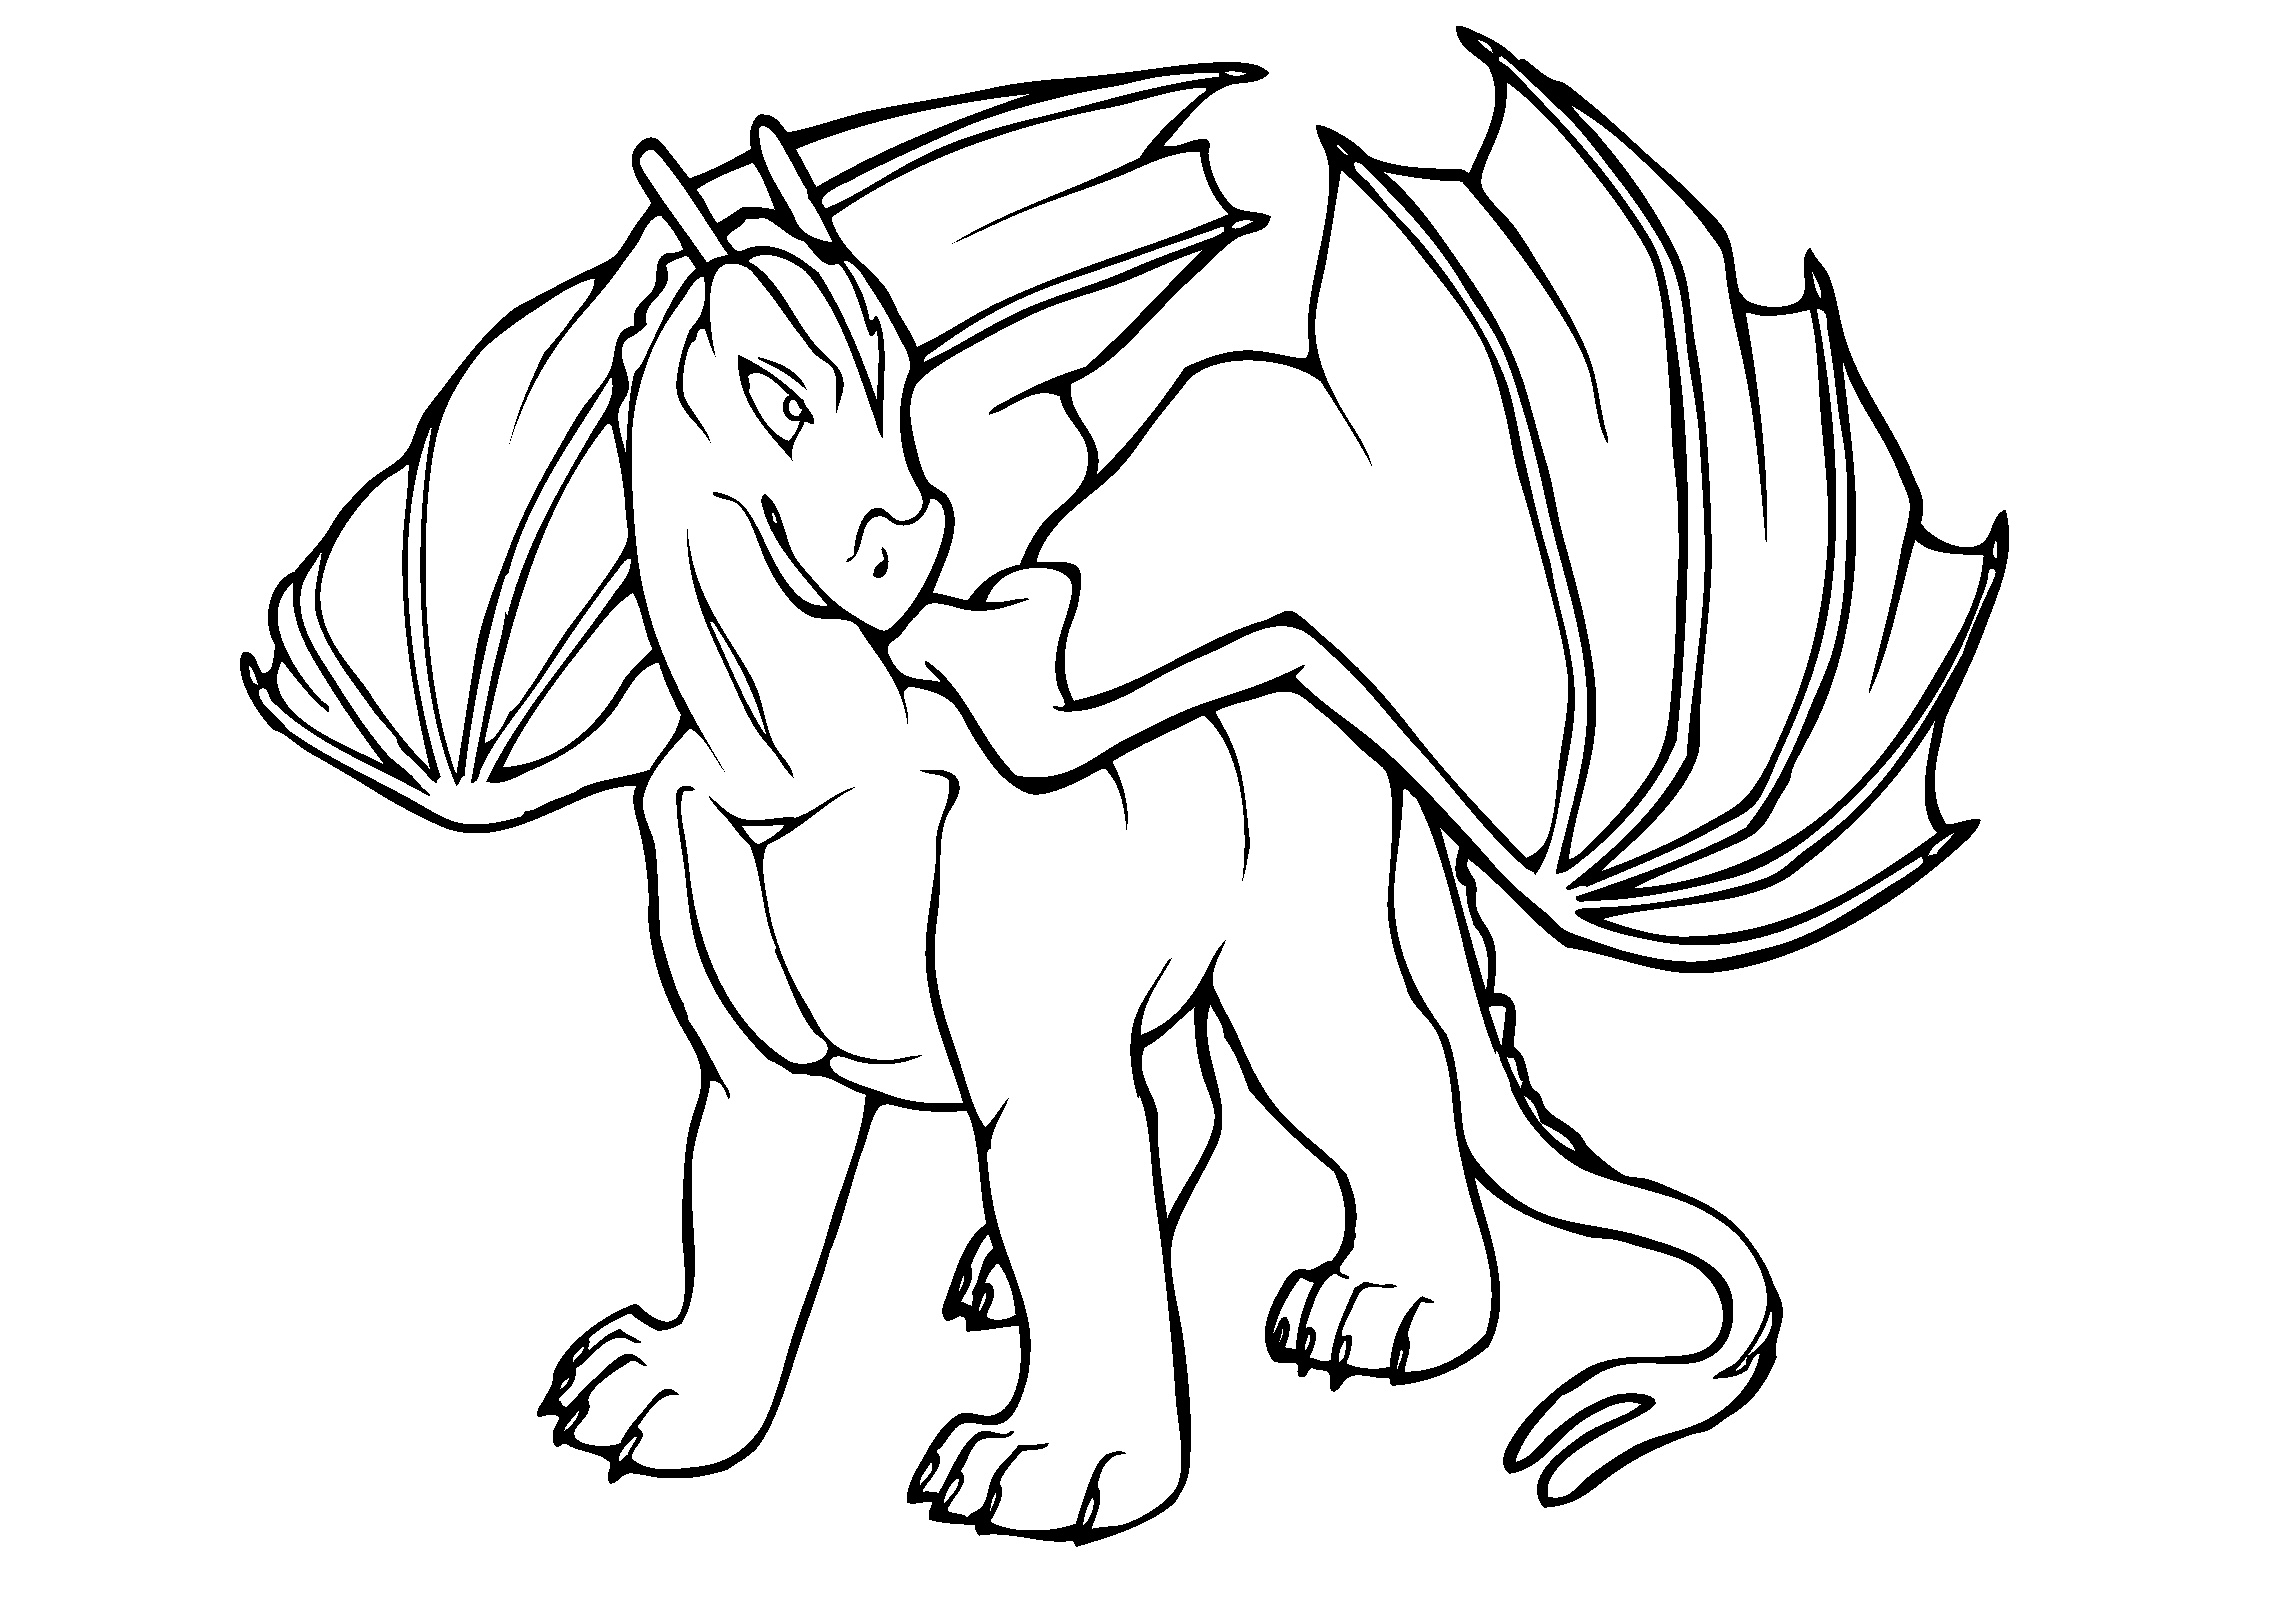 Mythical Dragon Coloring Pages for Adults